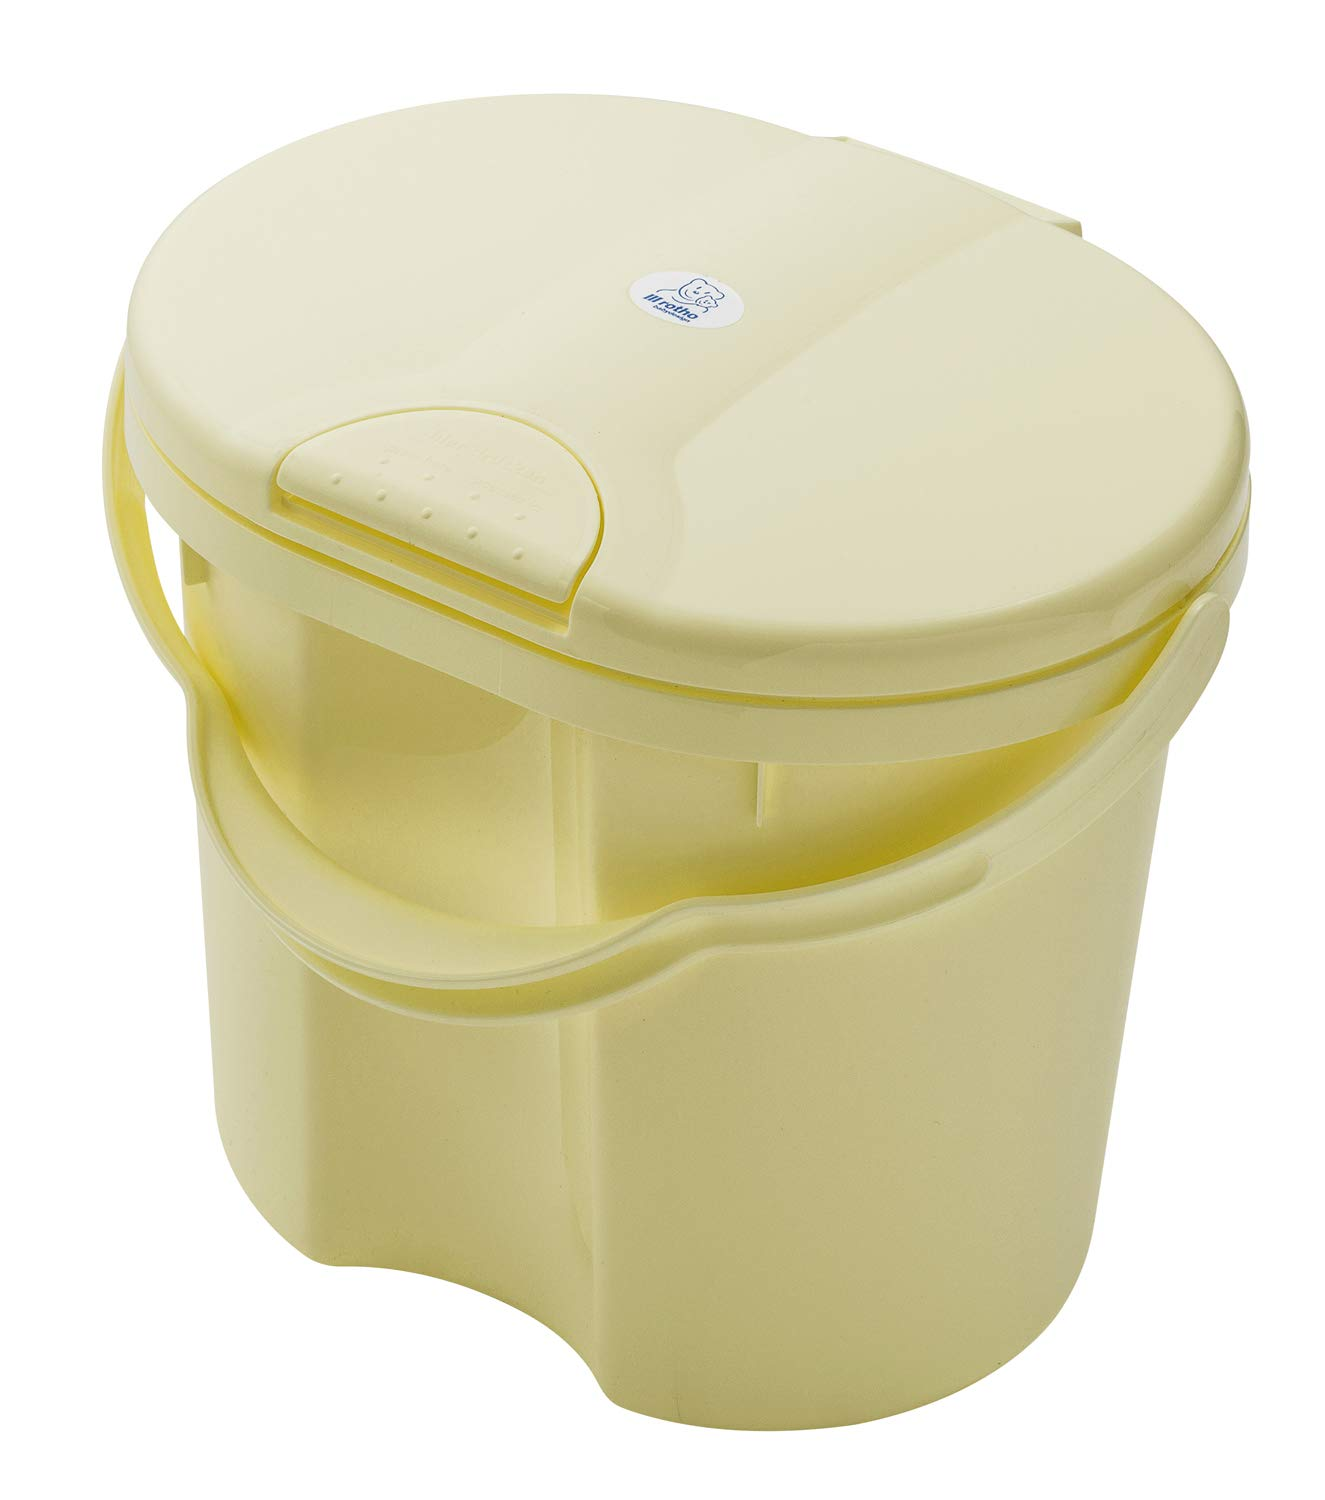 Rotho Babydesign TOP Nappy Pail, with Lid, 11l, 0+ Months, Yellow Delight, 20002 0290 by Rotho Babydesign